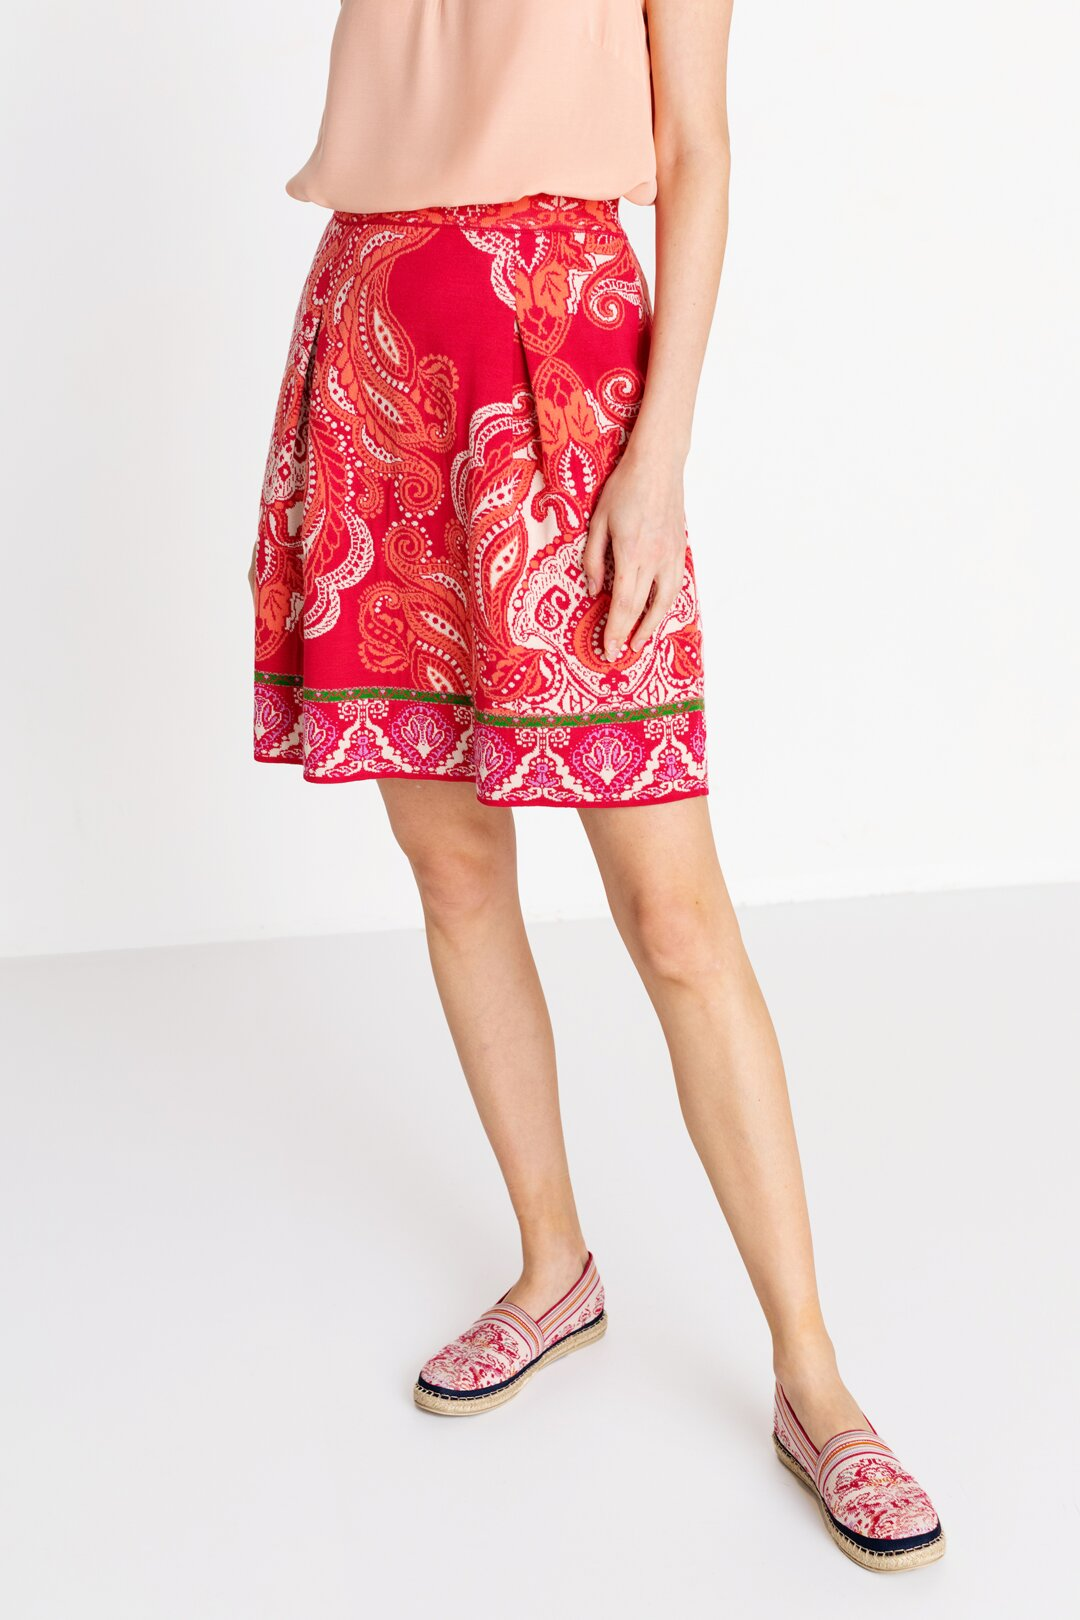 outfit-7c8a5779